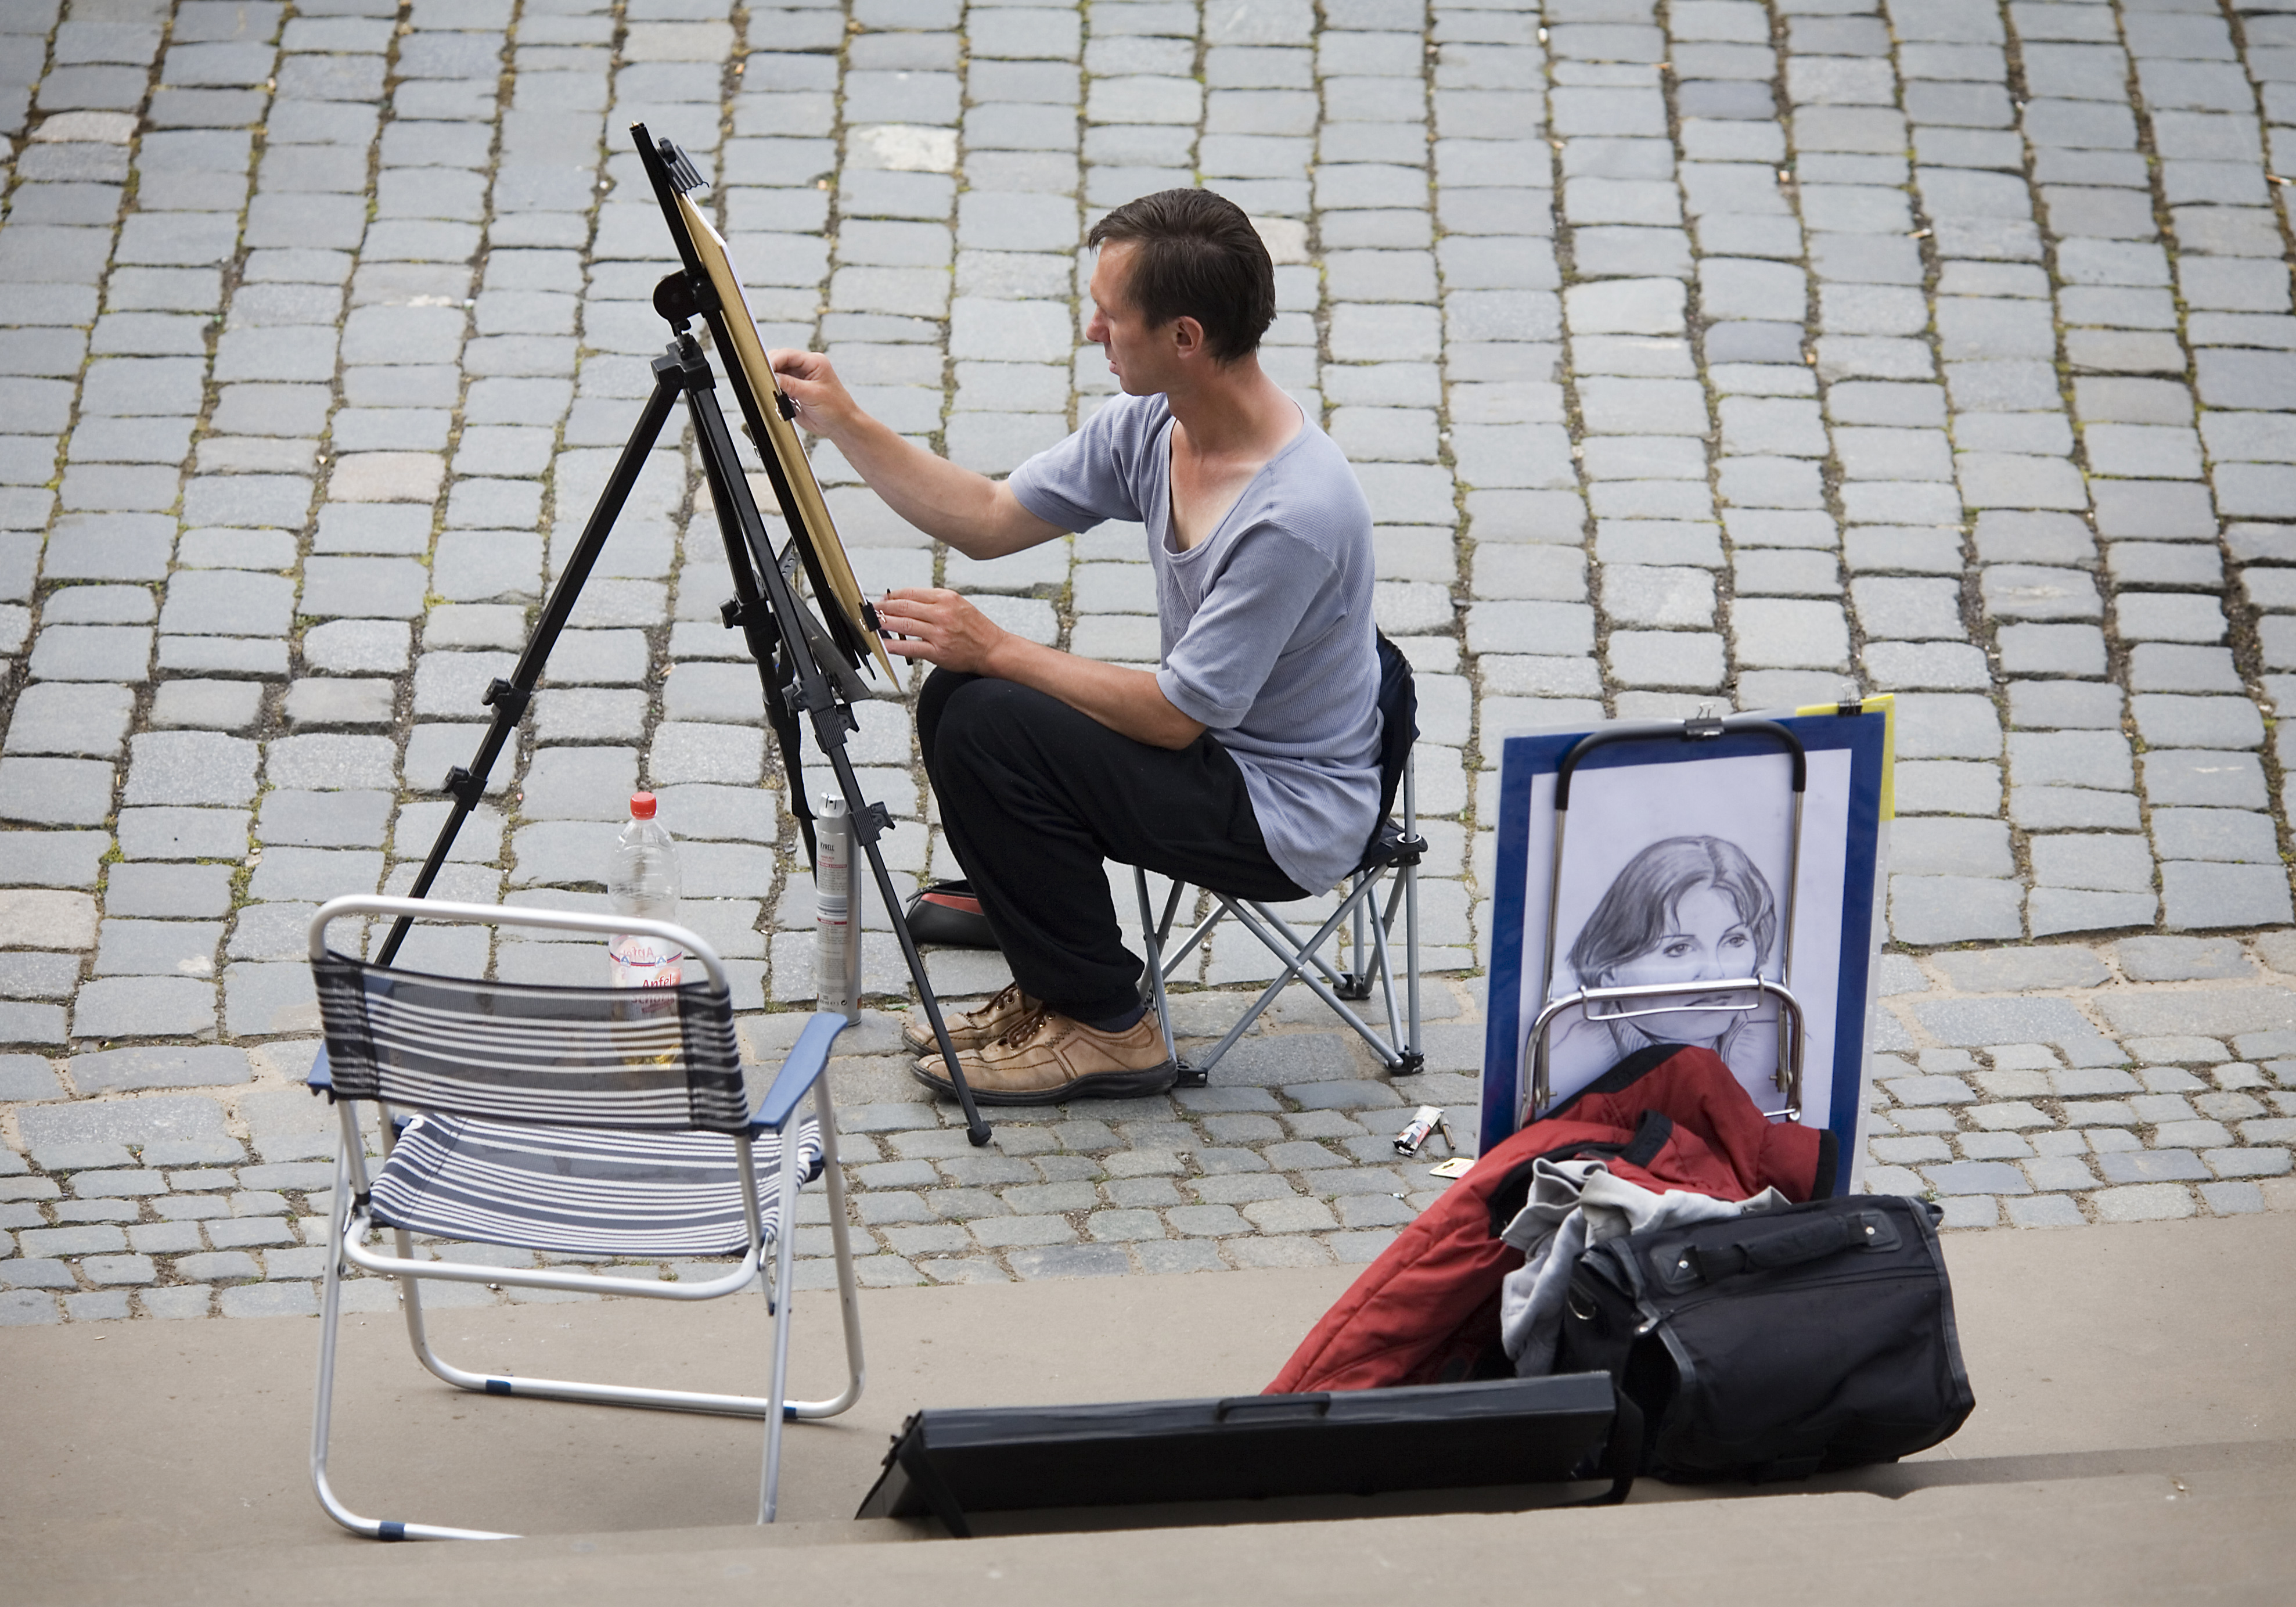 http://upload.wikimedia.org/wikipedia/commons/3/31/Street_artist_painting_in_a_painting_easel%2C_Dresden_-_1384.jpg